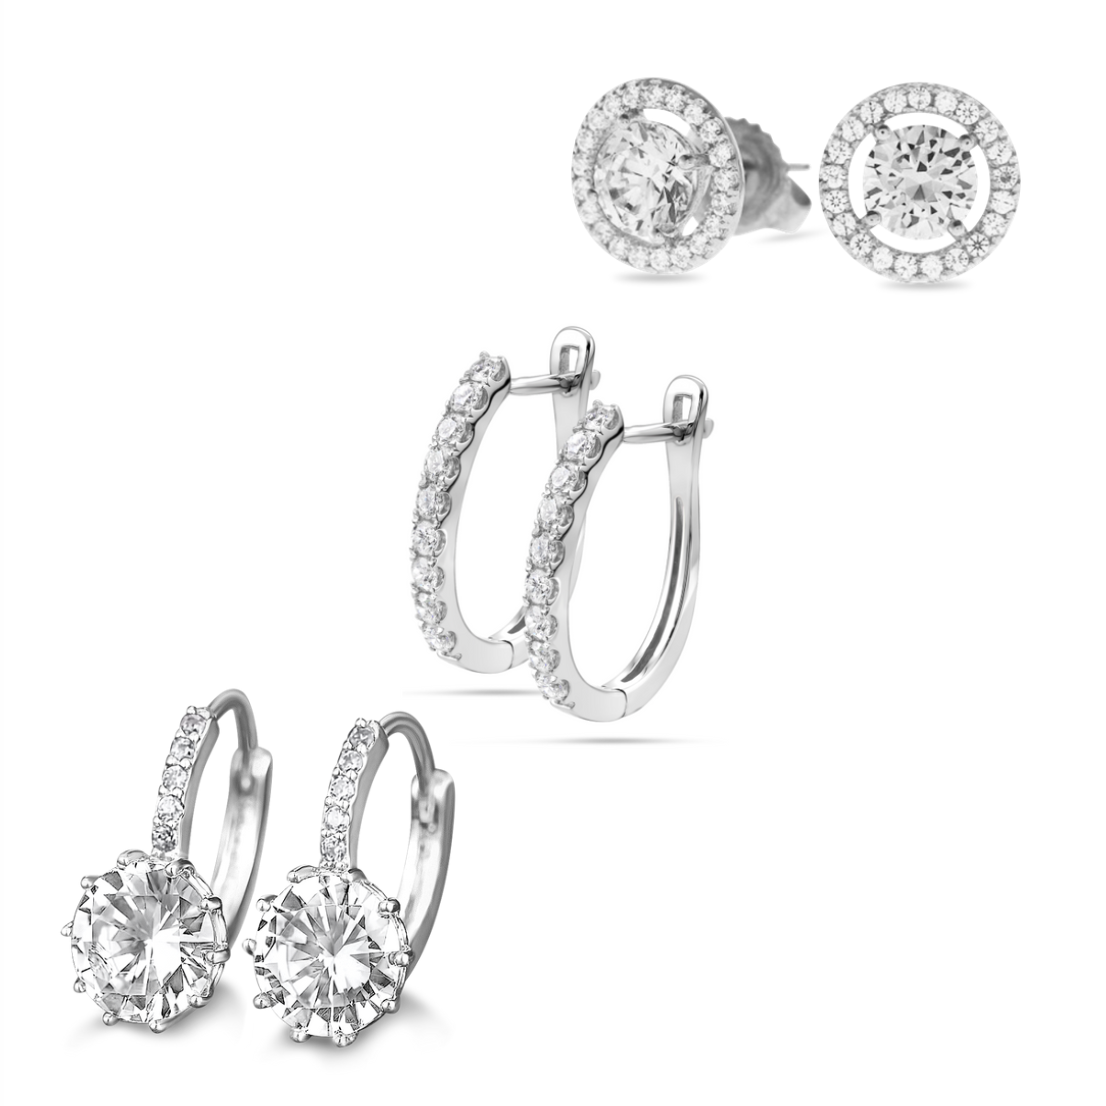 [PROMO SET] Sarlotte Quinn Celeste Earrings Diamond Set